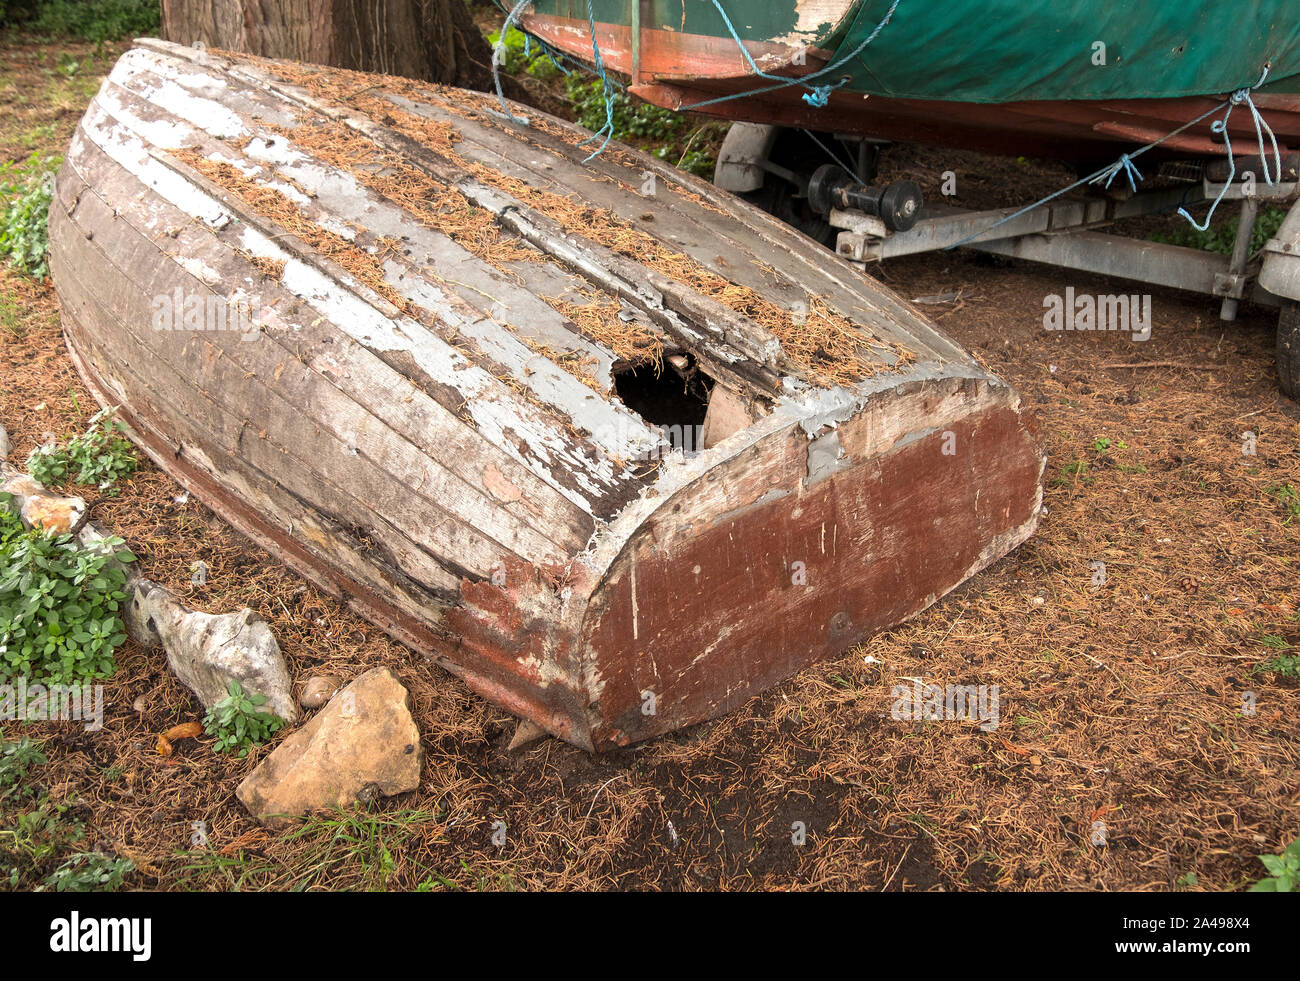 Old wooden row boat with a hole in its hull Stock Photo